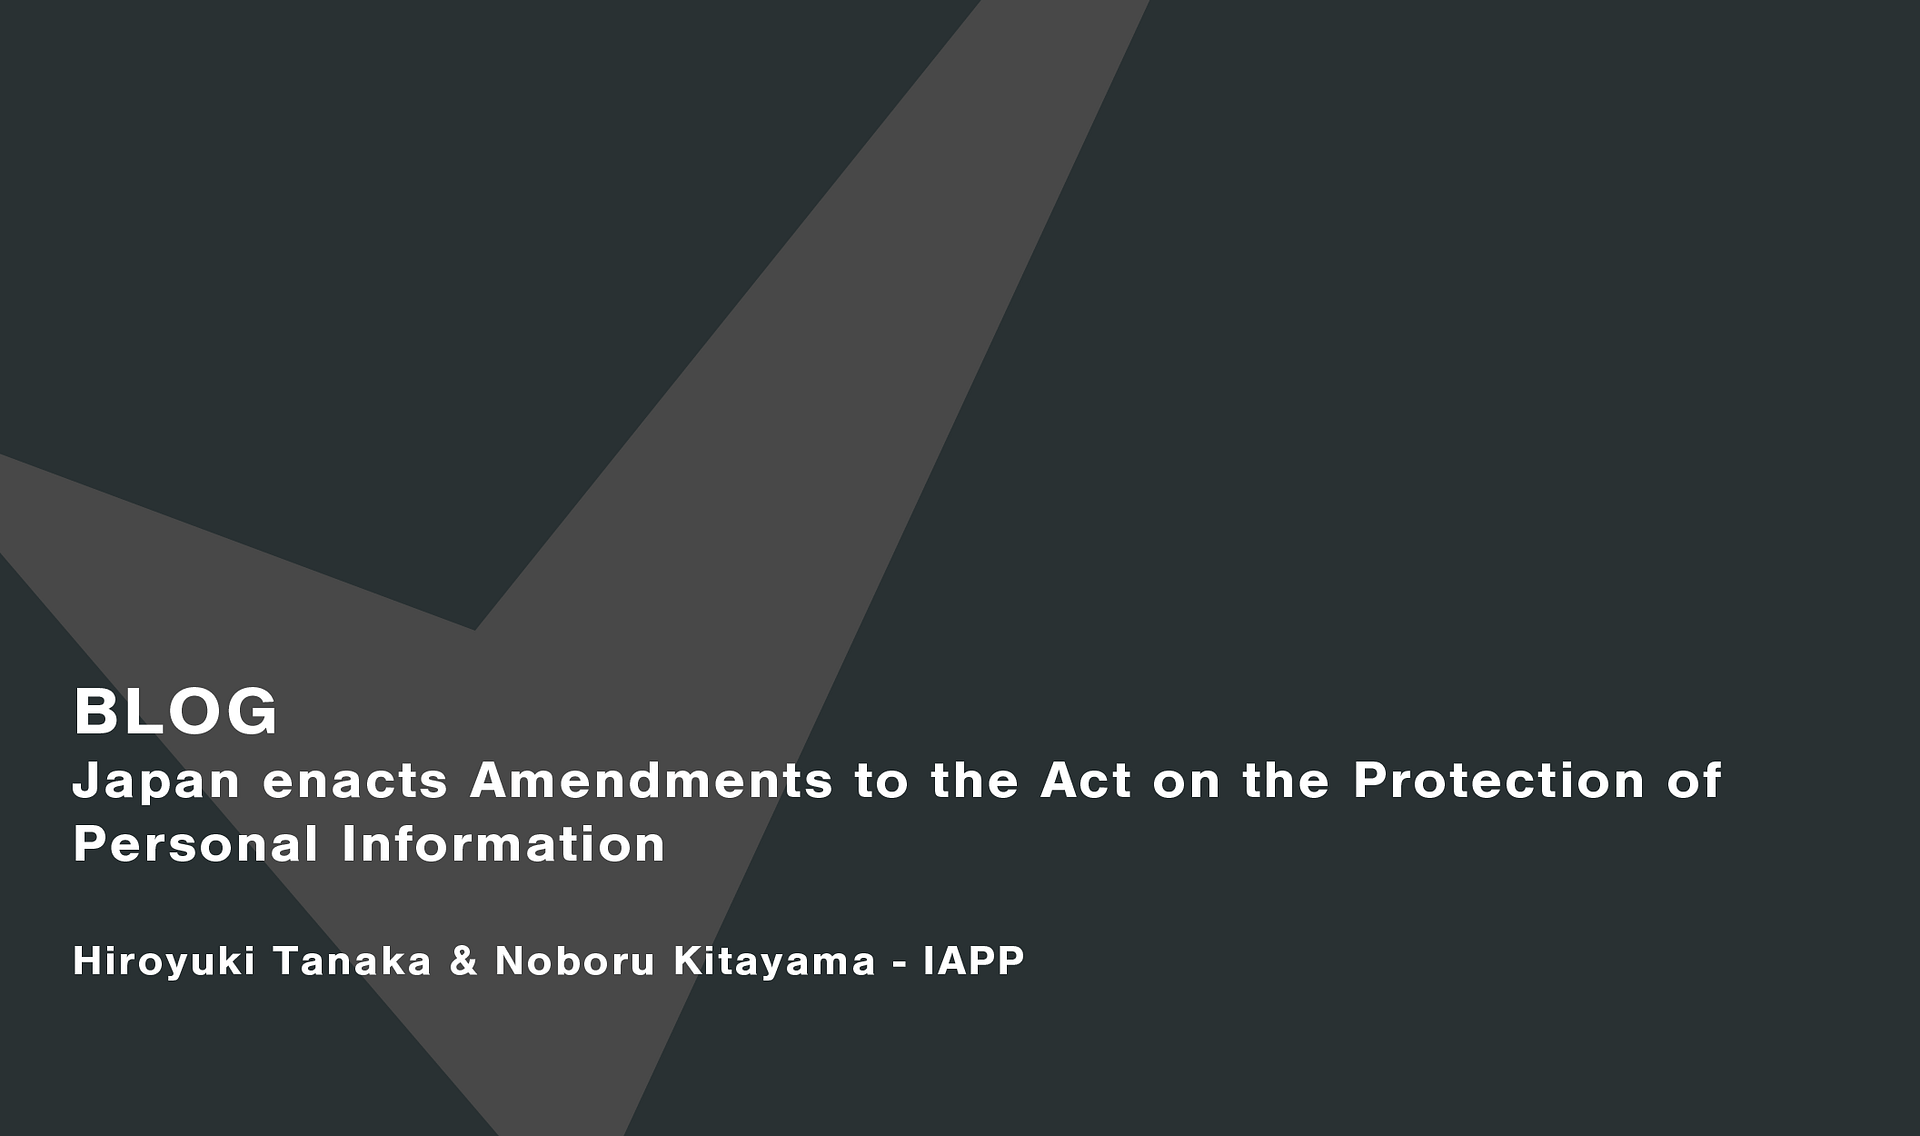 Japan enacts Amendments to the Act on the Protection of Personal Information Cassie personal information & consent management